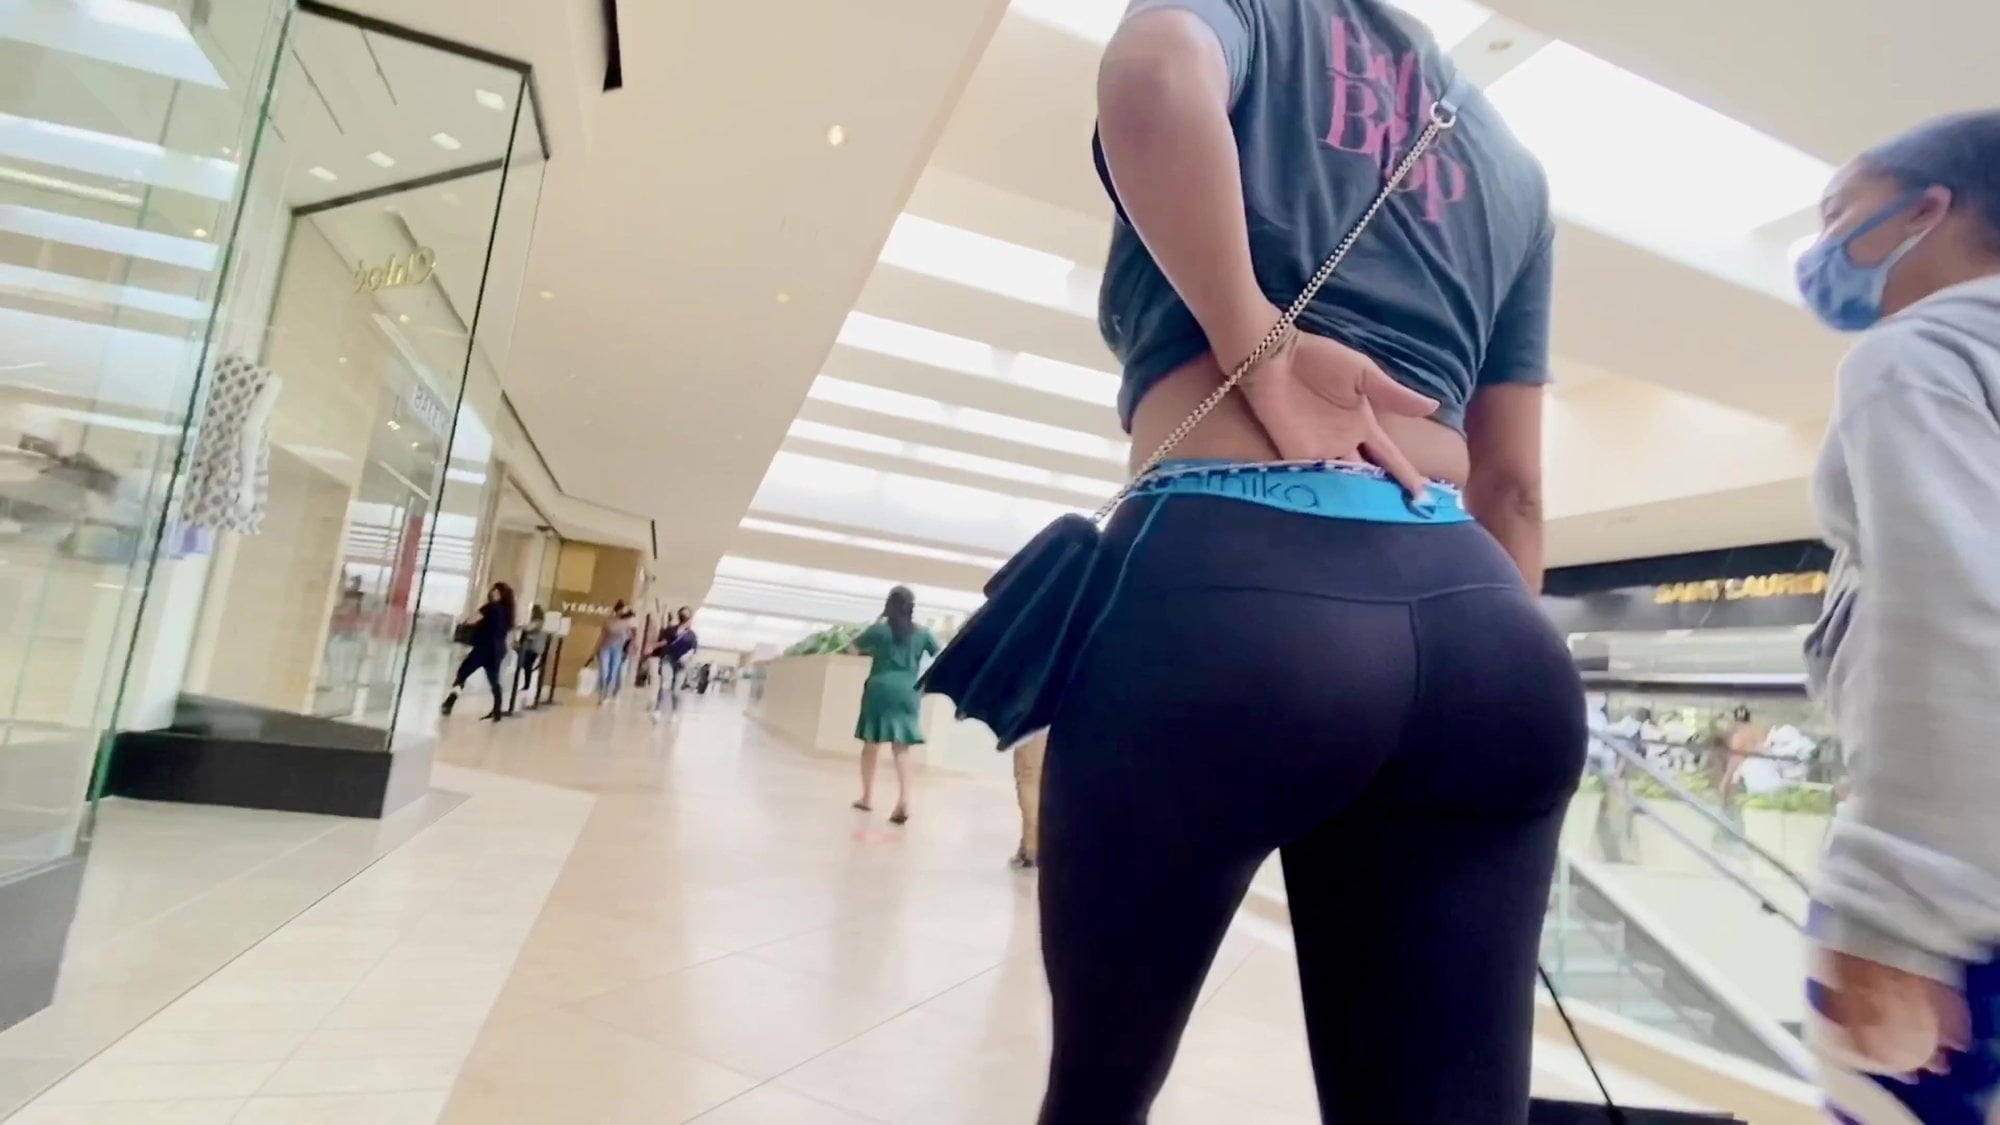 Red galery voyeur photo of girls showing panties in a shopping mall